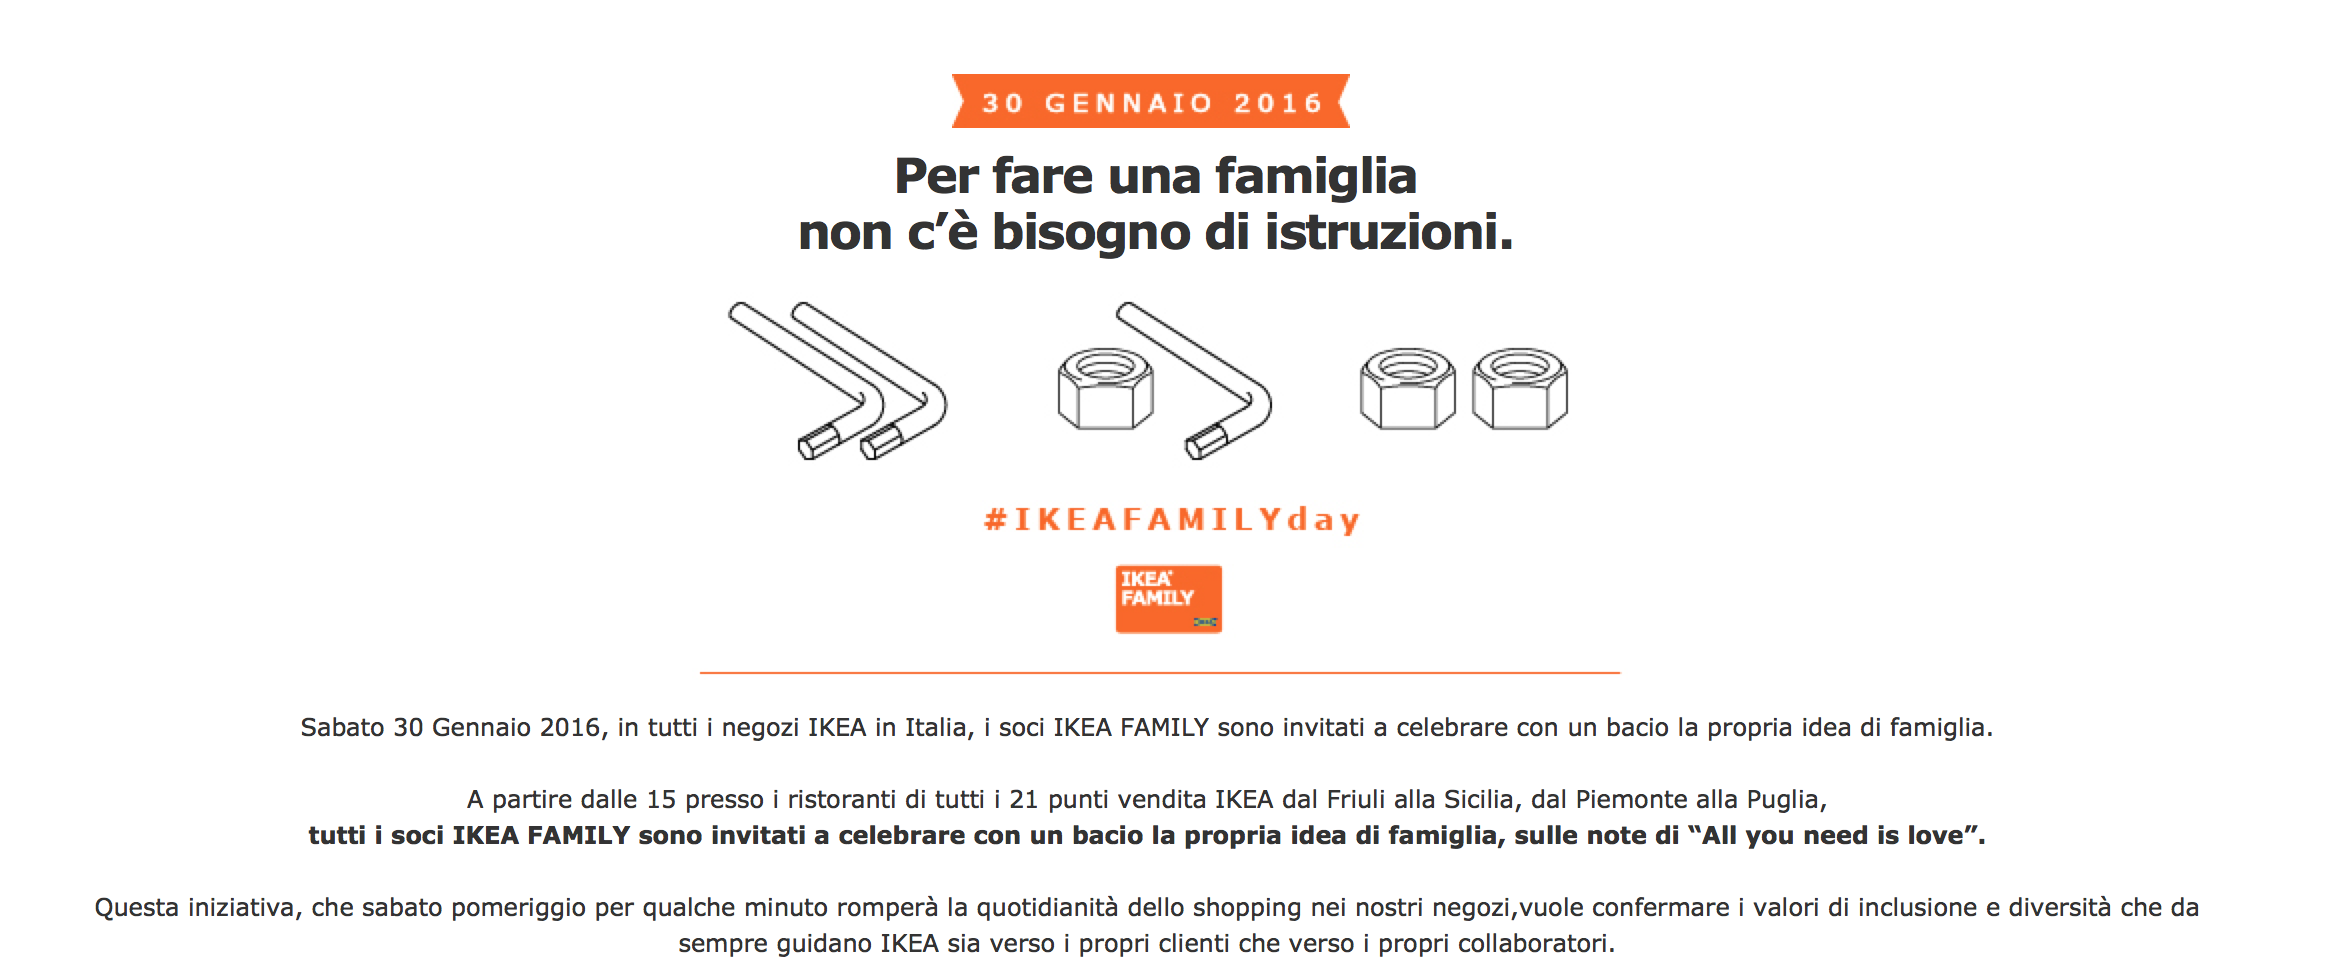 family-day-ikea1